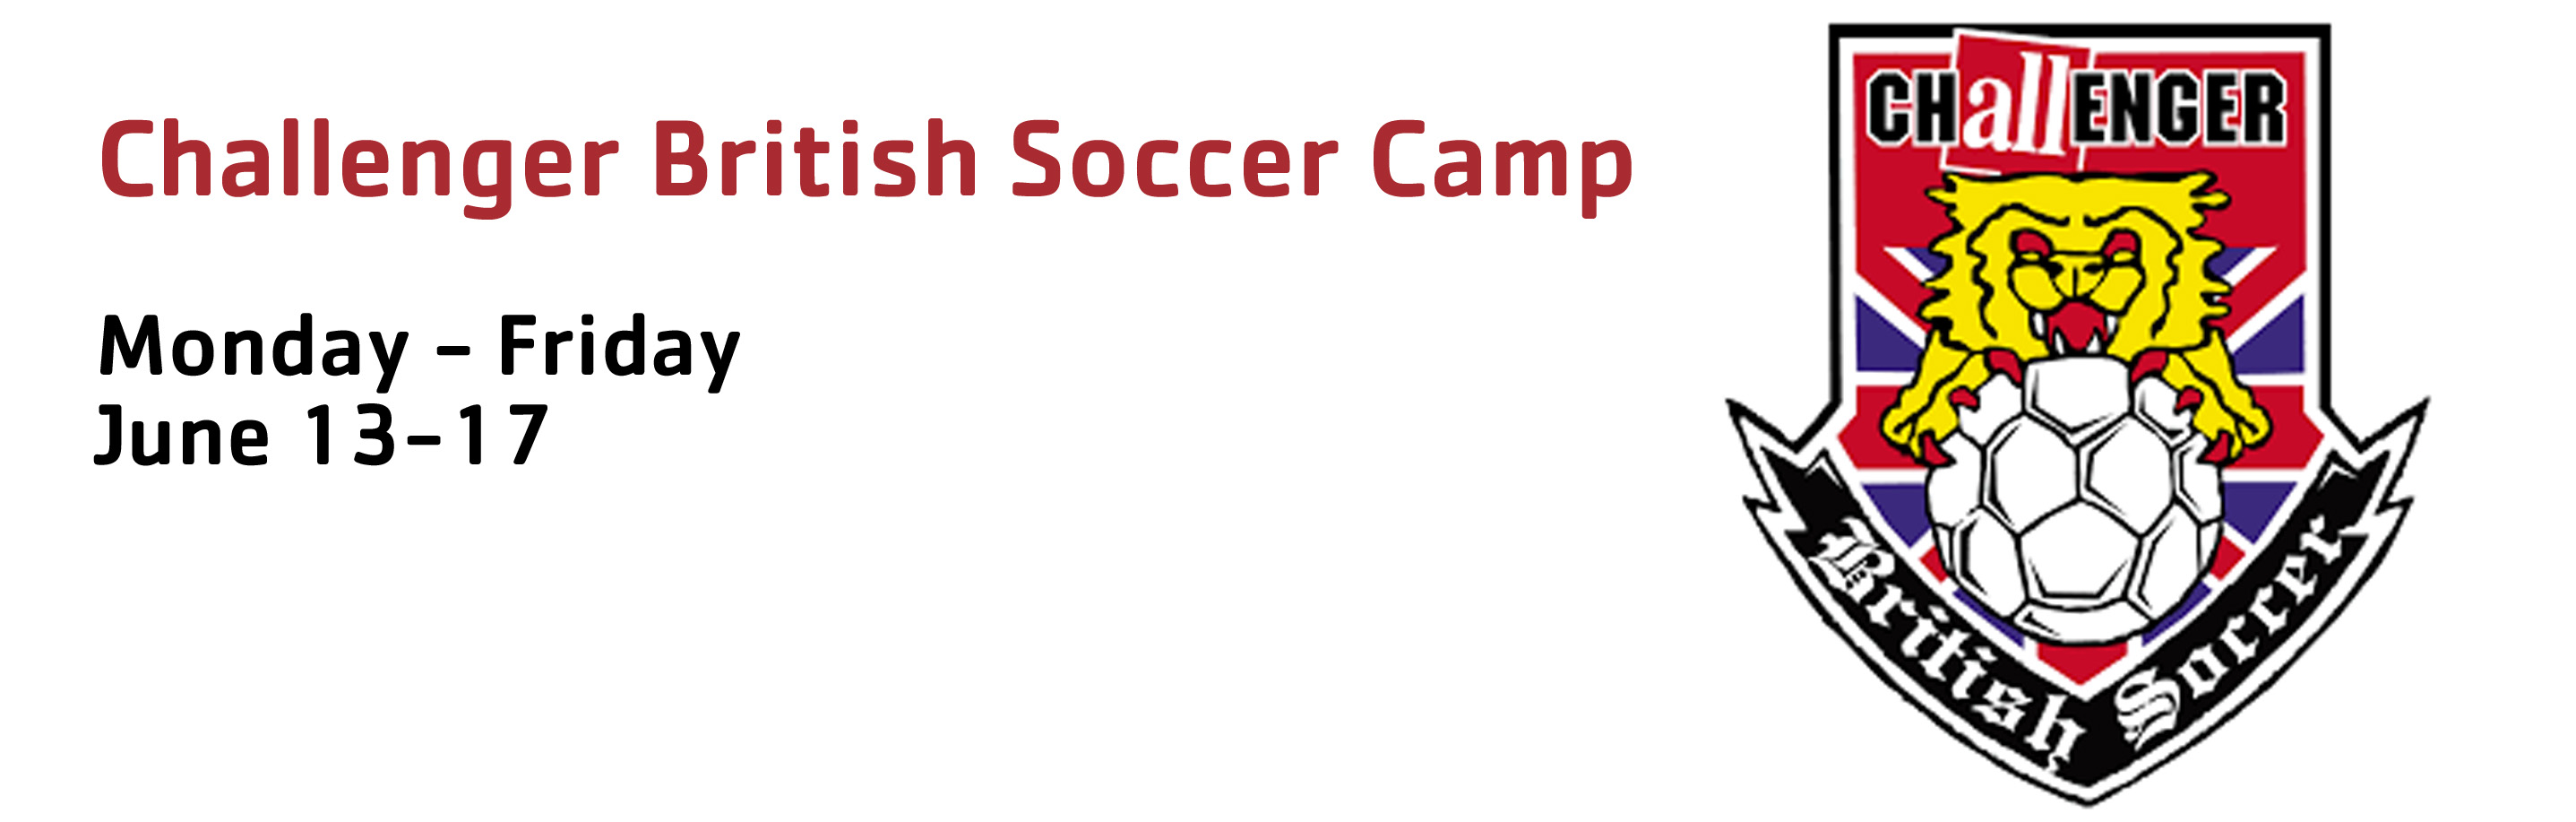 Spotlight British Soccer Camp